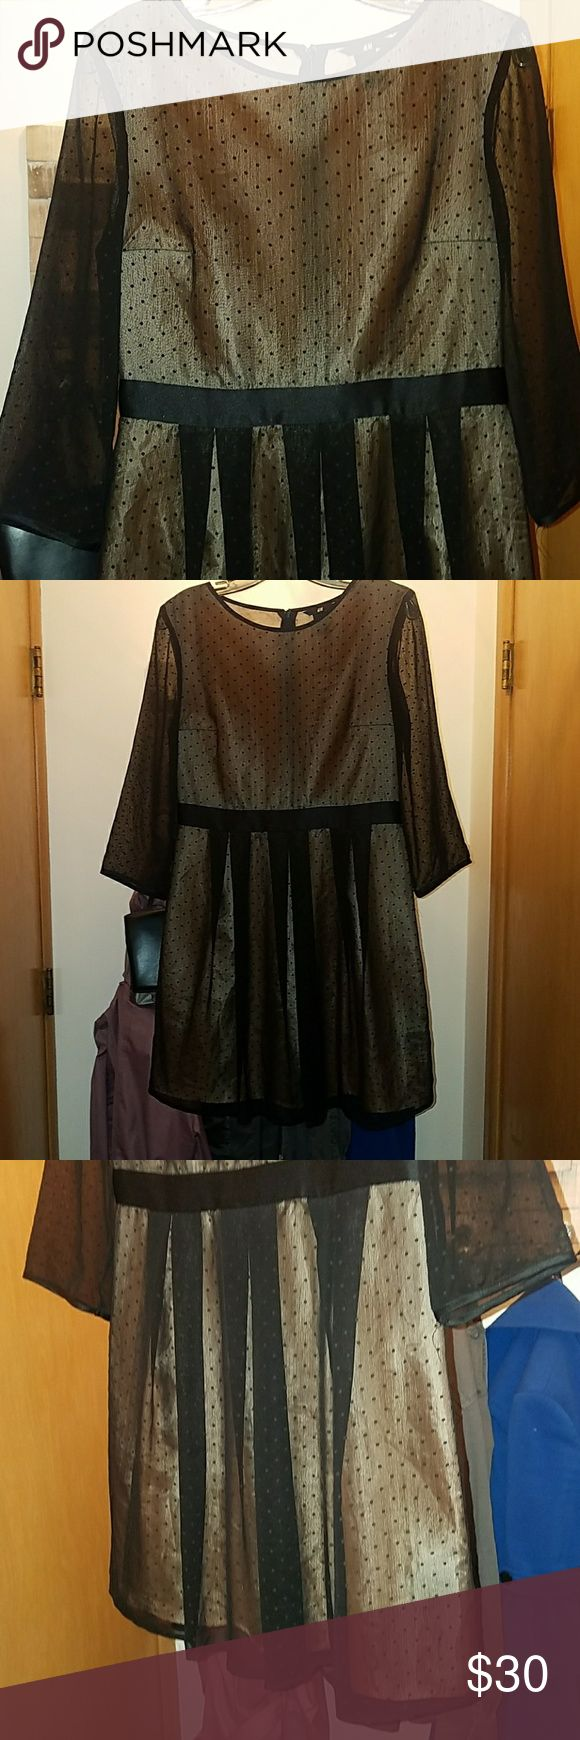 H&M Polka Dot Mini Dress Adorable little dress! Goldy slip underneath with sheer black polka dot overlay. Sleeves are completely sheer as seen in pic. Super cute party dress! Great condition! 100% polyester H&M Dresses Mini